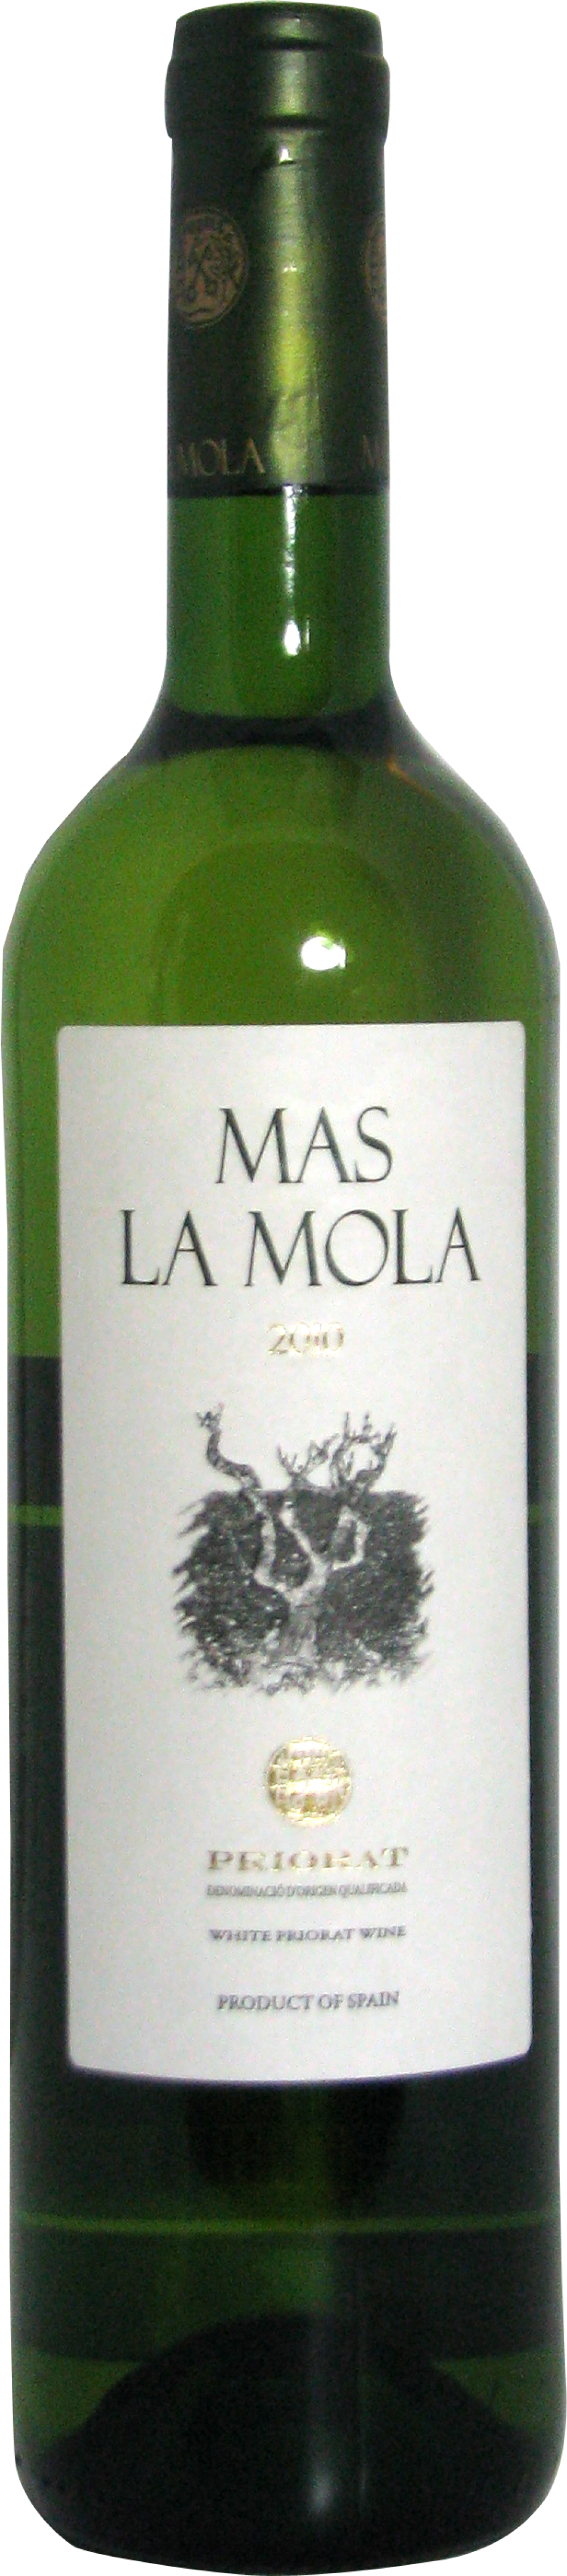 files/images/wines/Spain/mas-la-mola-priorat/2EPMB27_pic_big.png